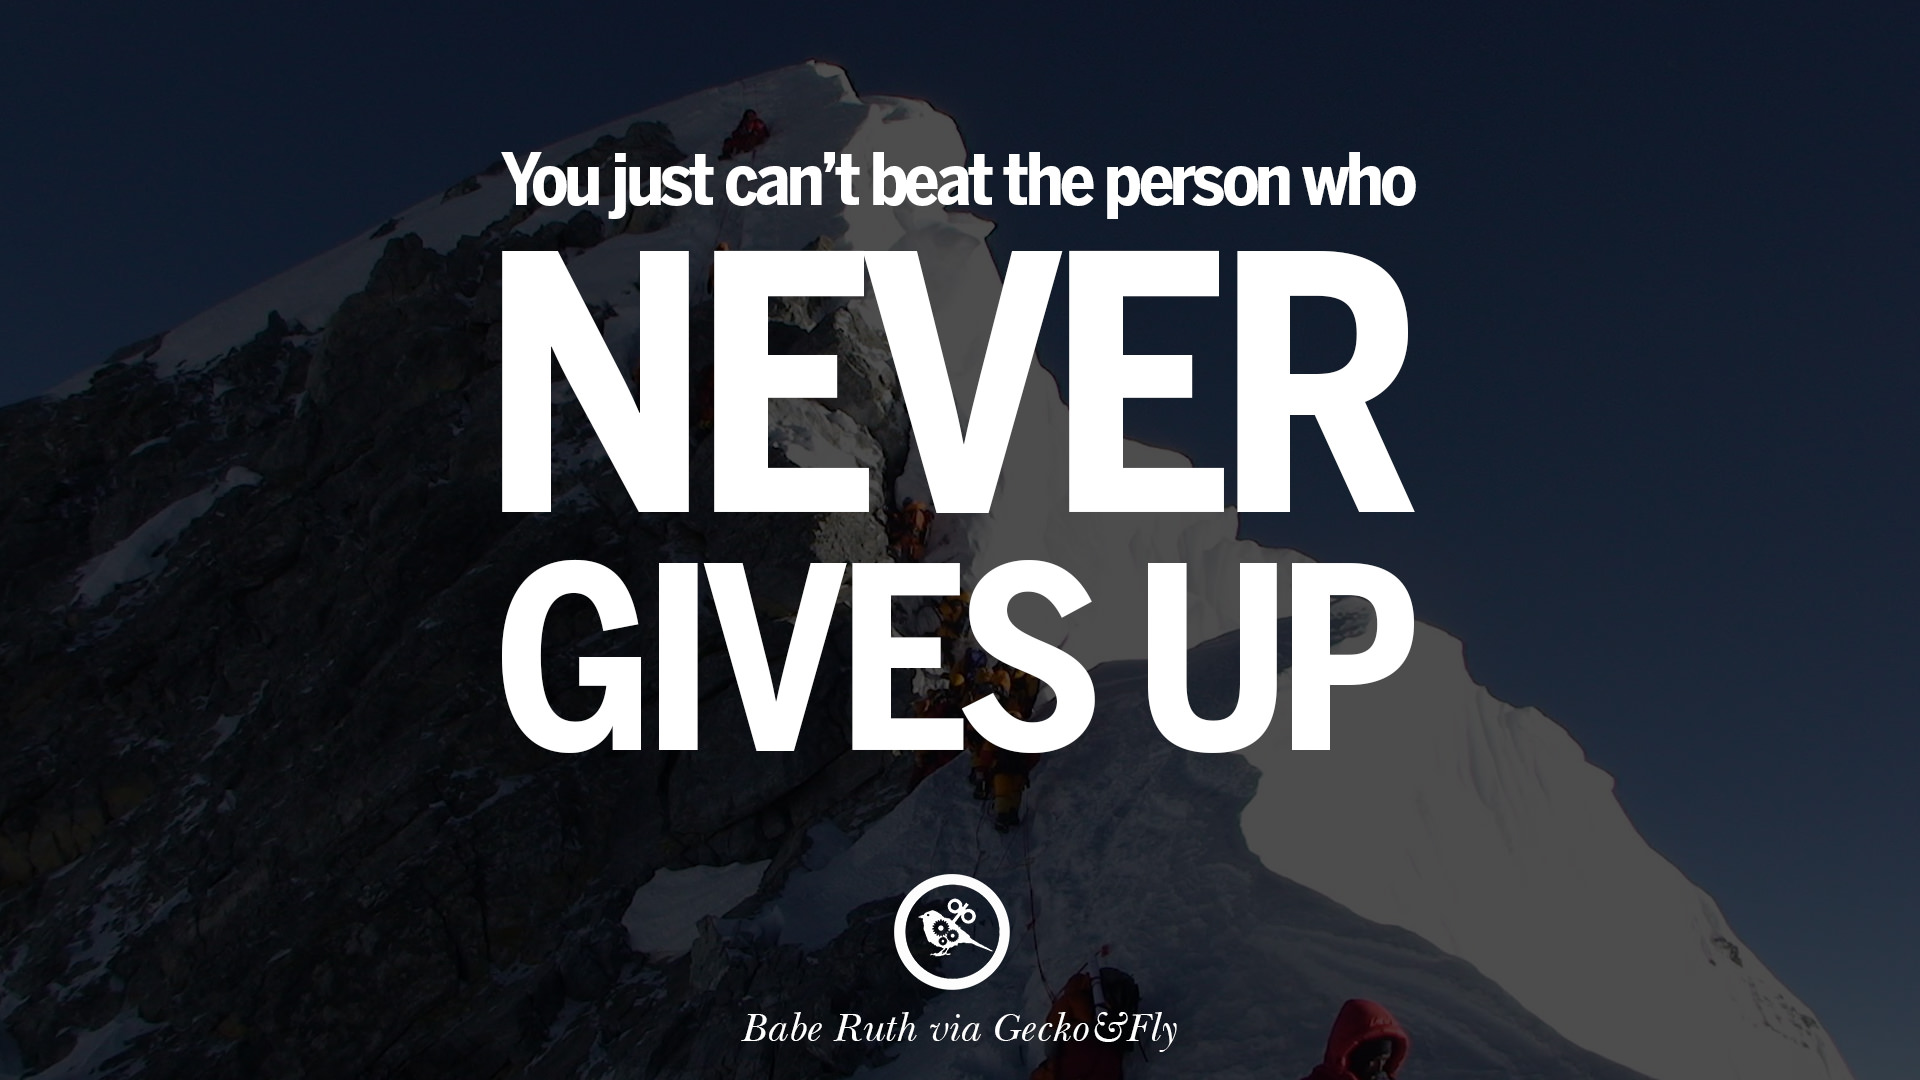 Motivational Words 20 Encouraging And Motivational Poster Quotes On Sports And Life